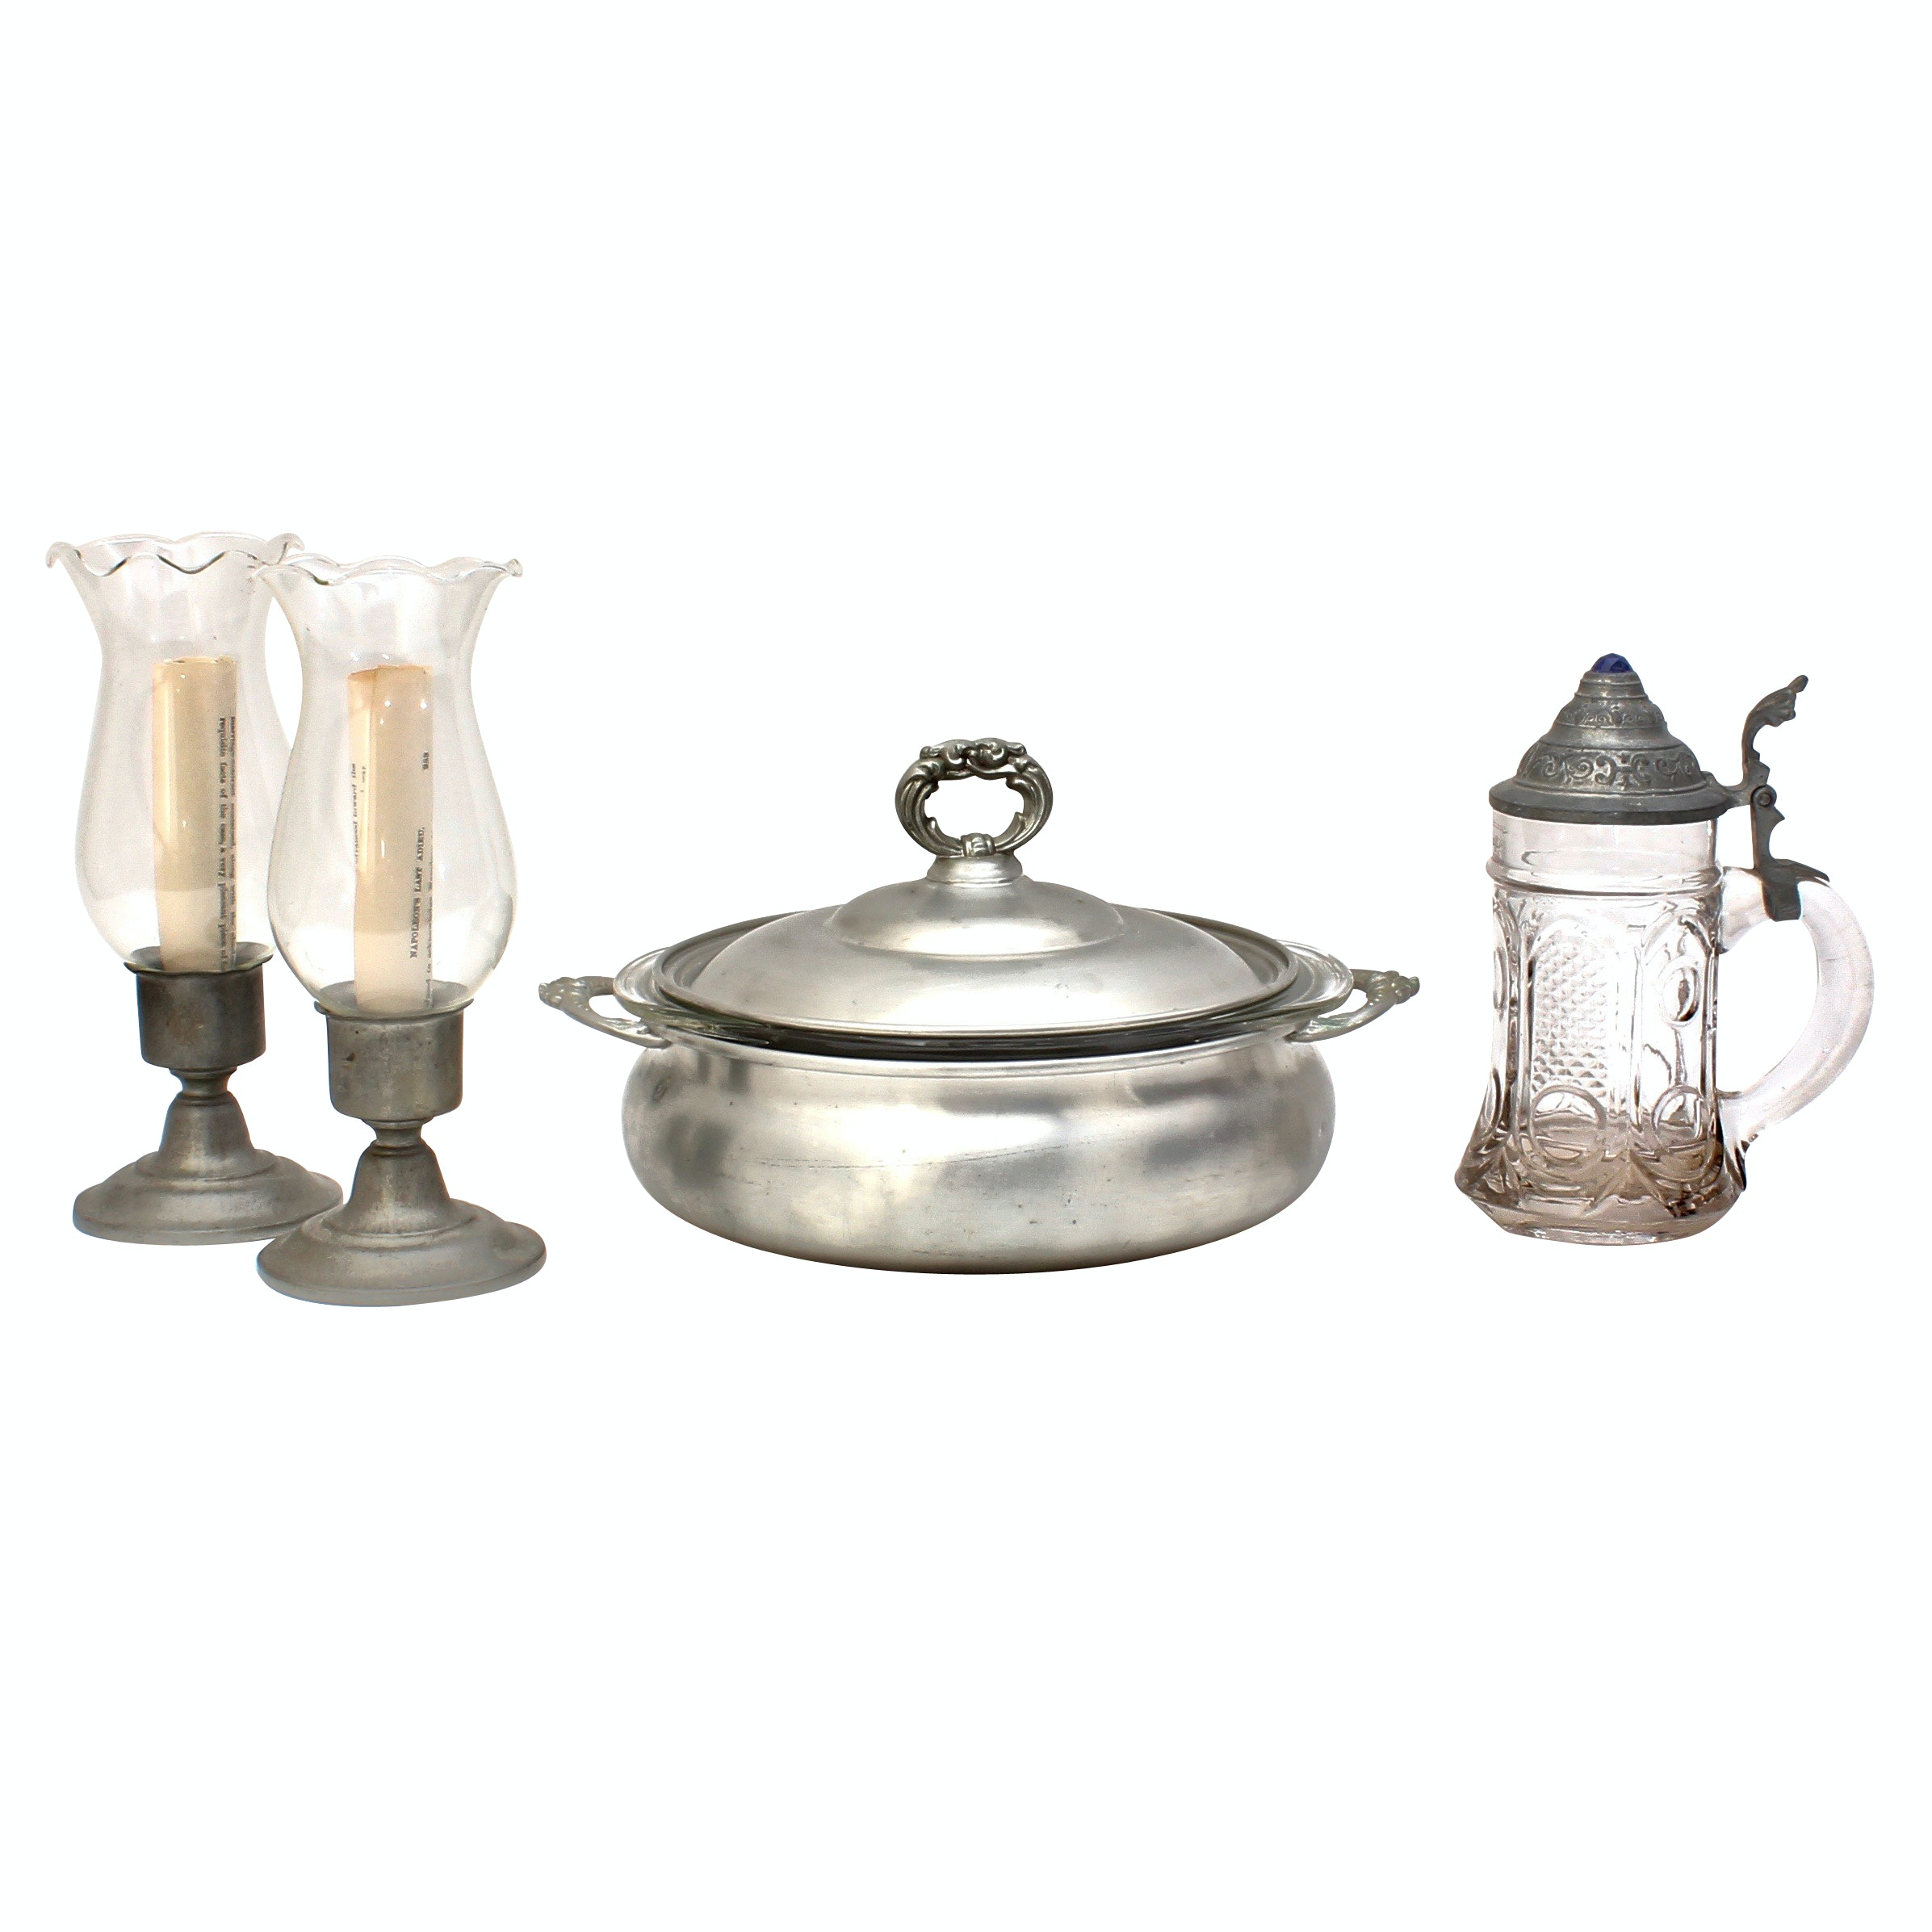 Pewter Stein Mug, Candle Holders and Dish